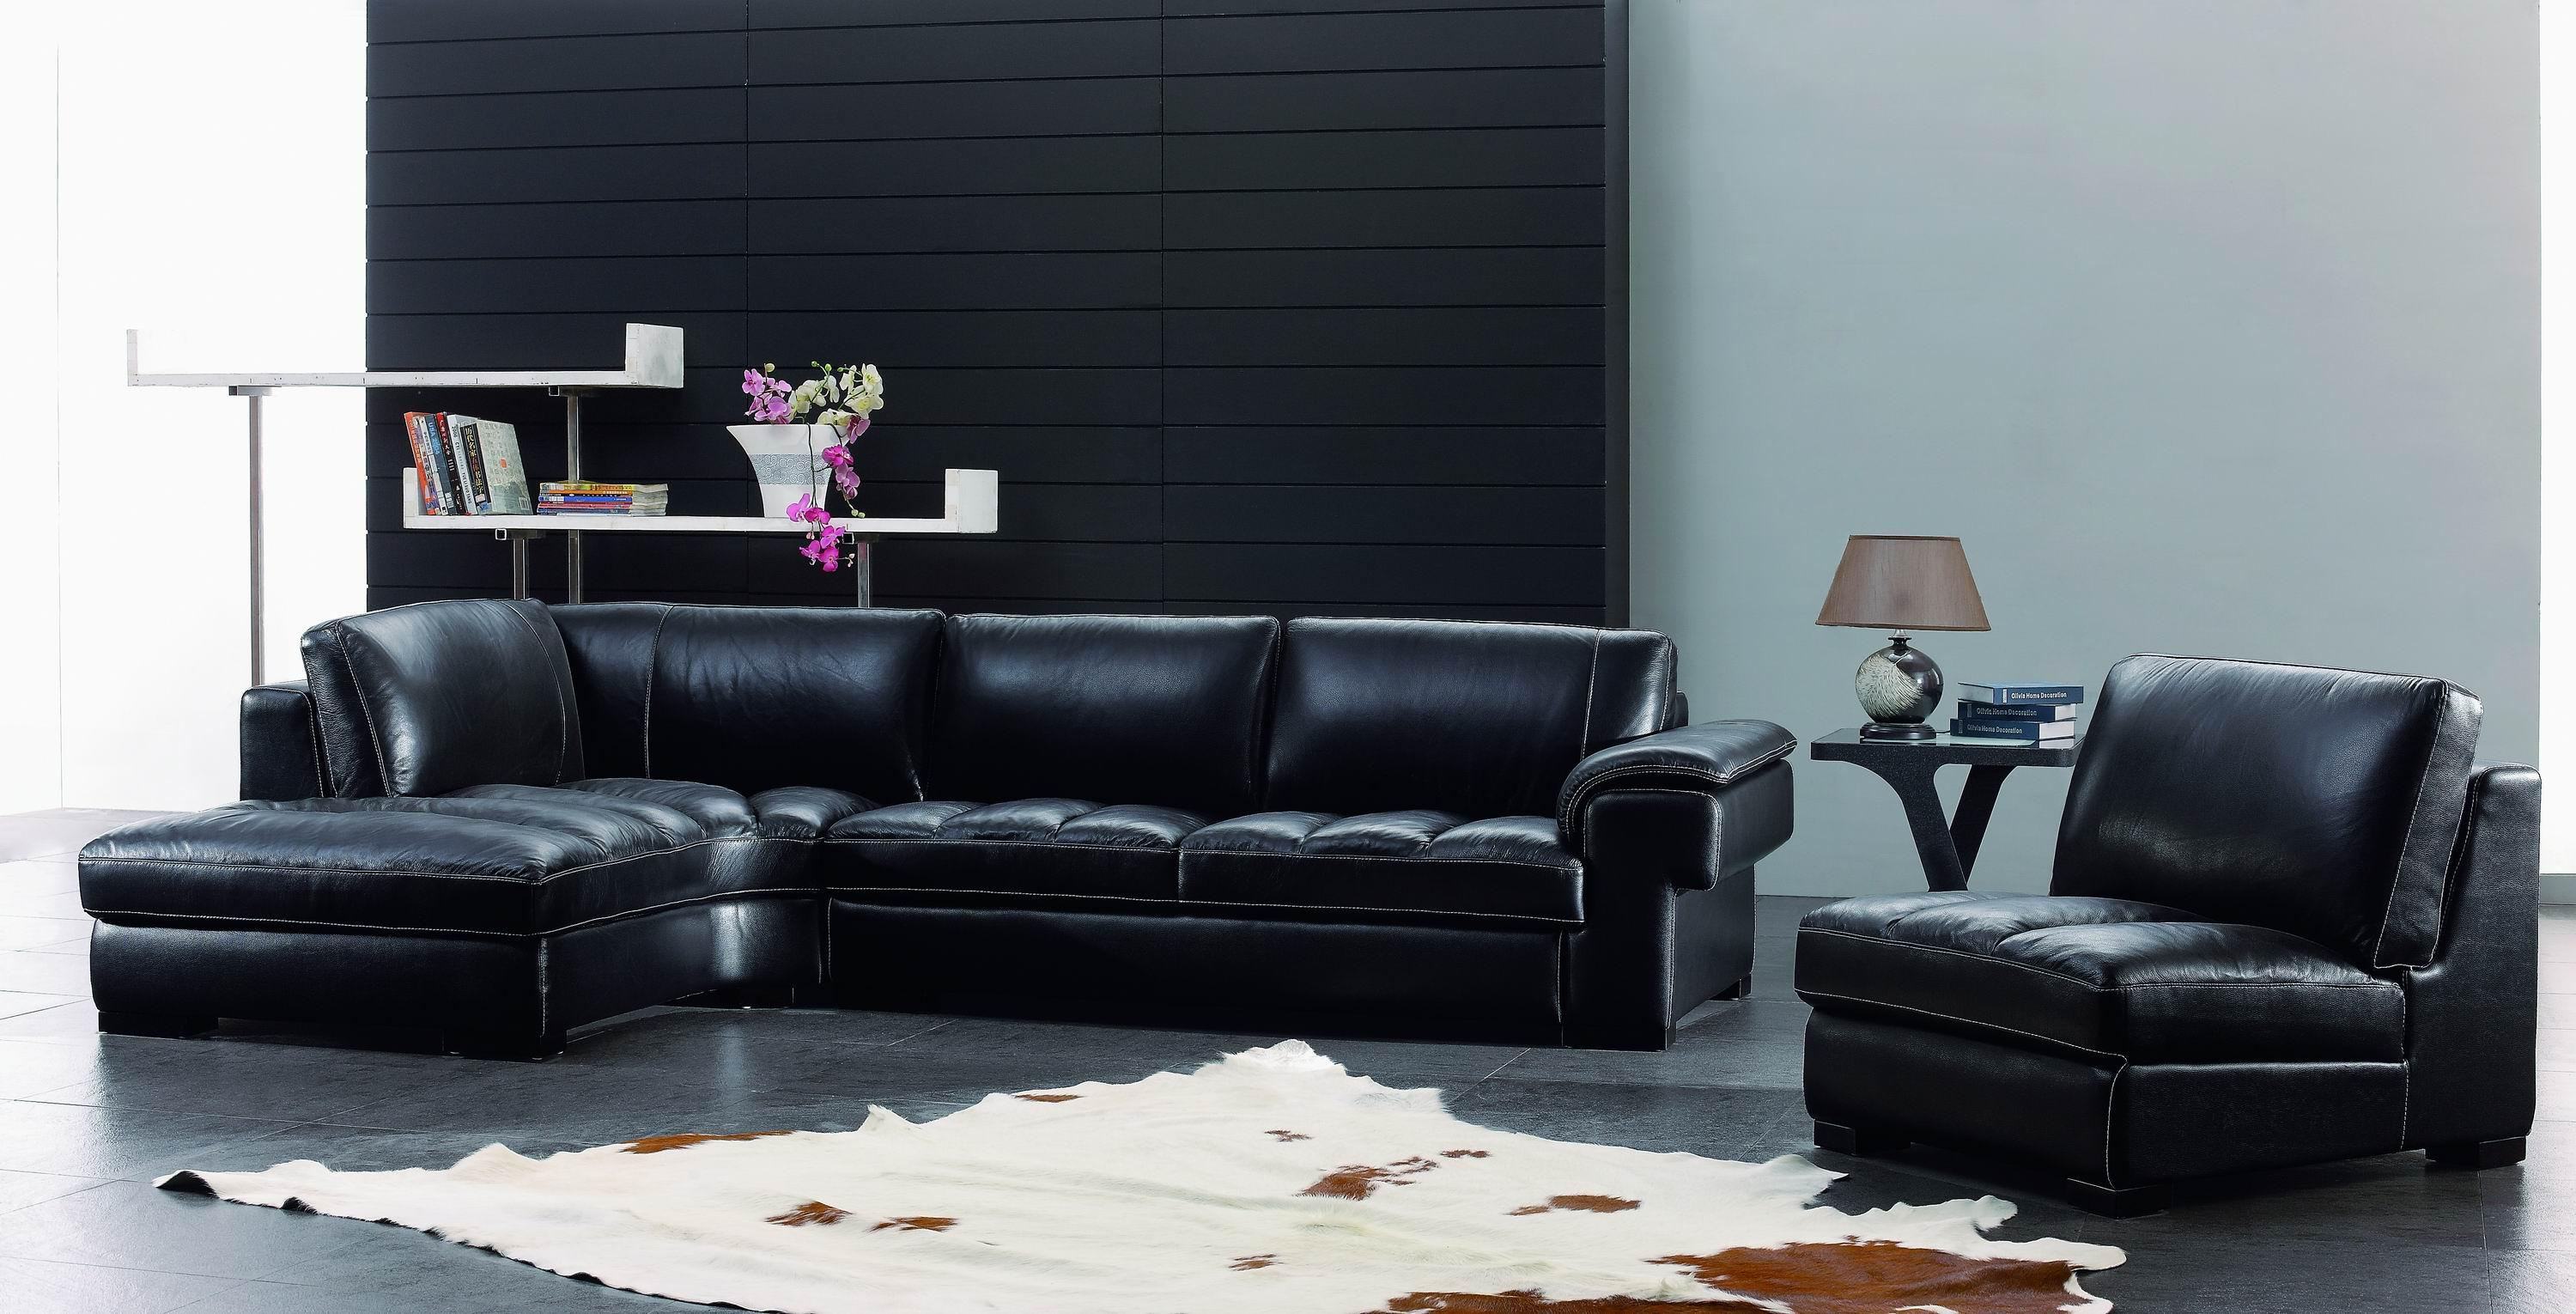 furnishing a dark living room modern dark living room furniture set black leather sofa ideas. Black Bedroom Furniture Sets. Home Design Ideas